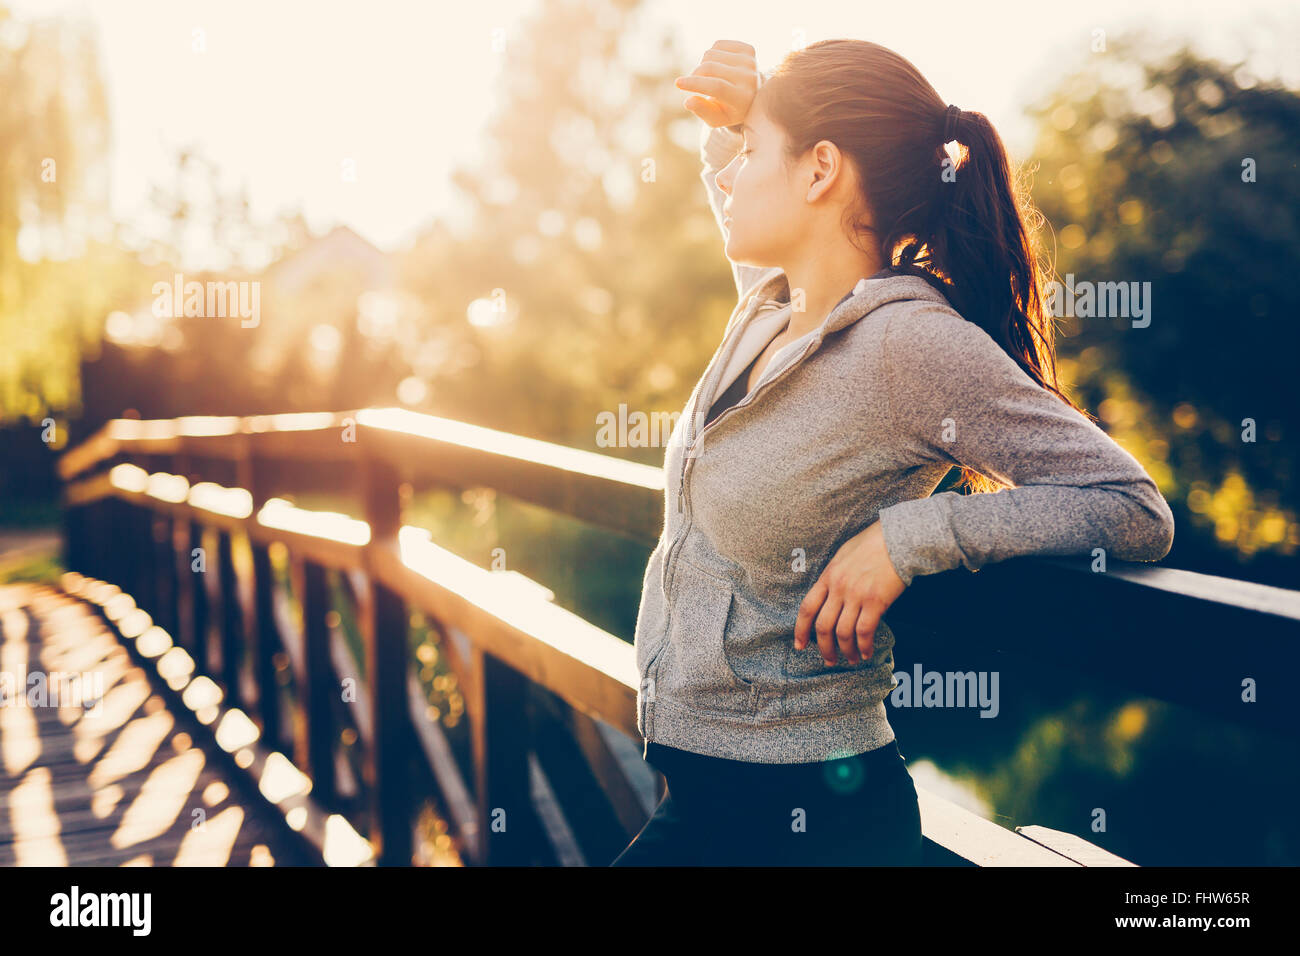 Beautiful female tired after jogging taking a break - Stock Image